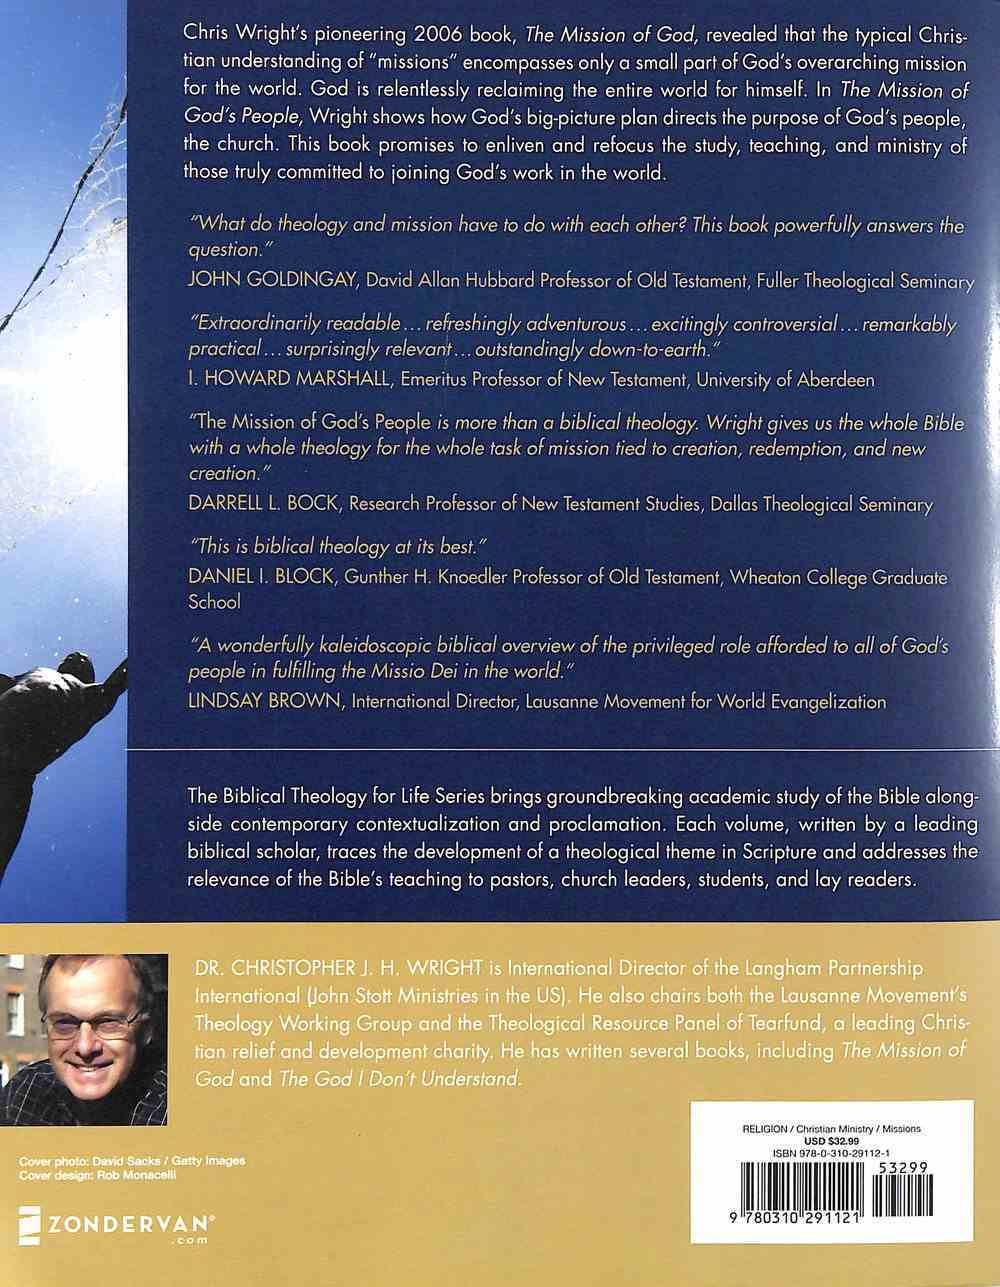 The Mission of God's People: A Biblical Theology of the Church's Mission (Video Lectures) DVD